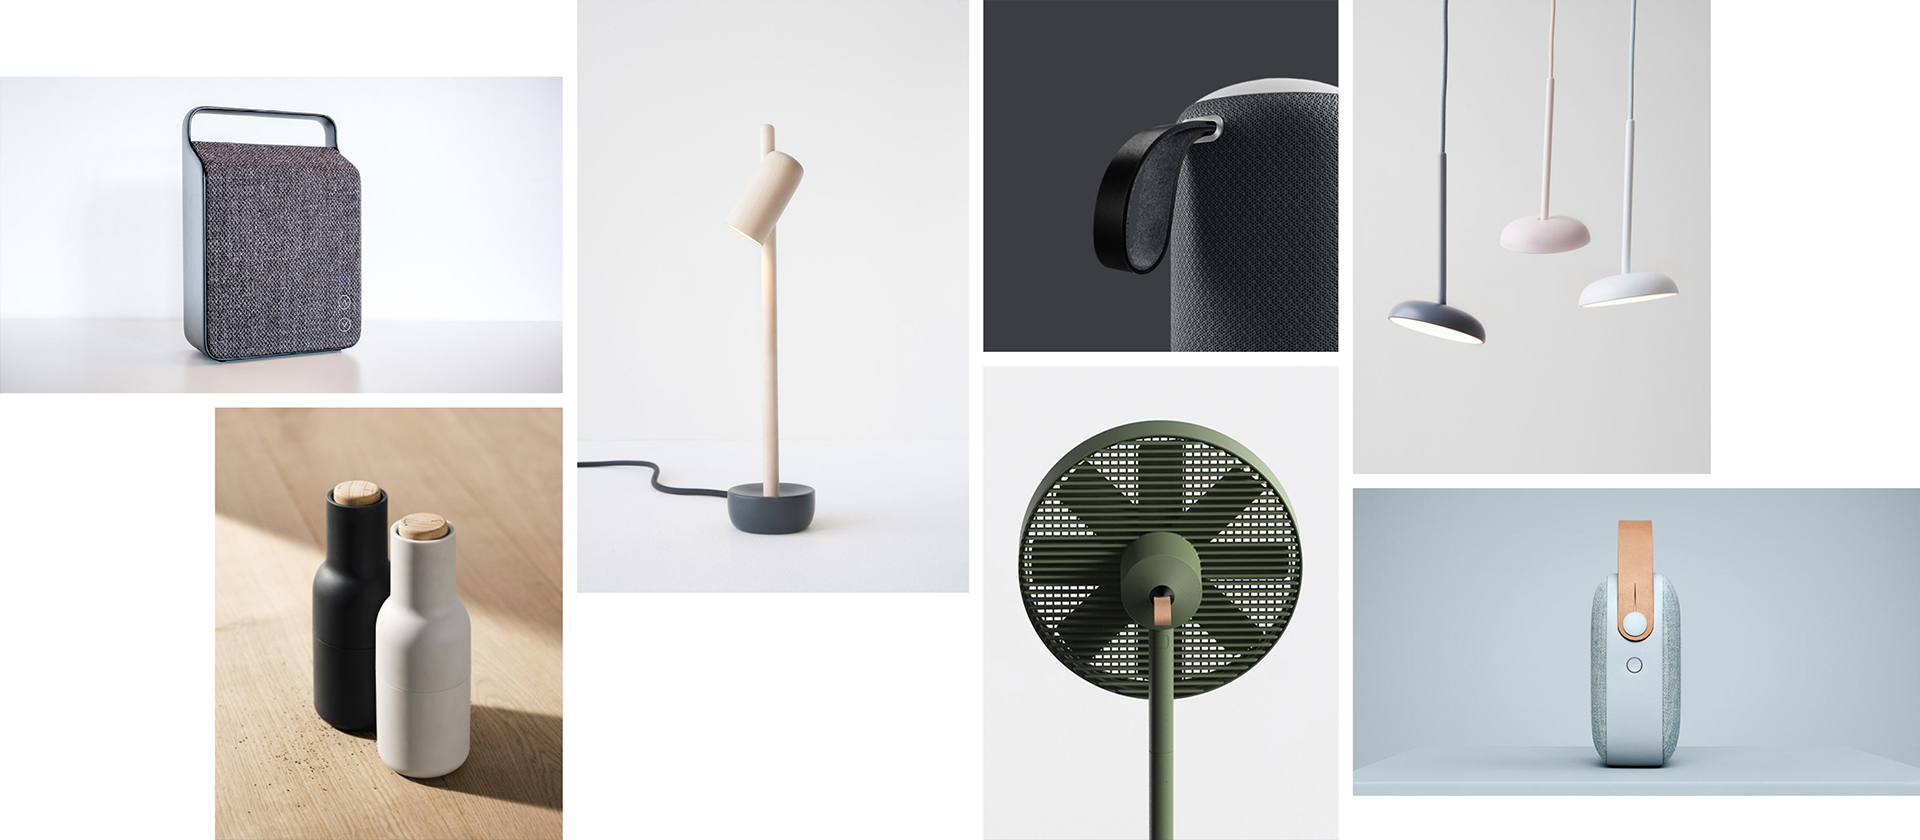 Innovative product design inspiration moodboard for Boneco Fan project